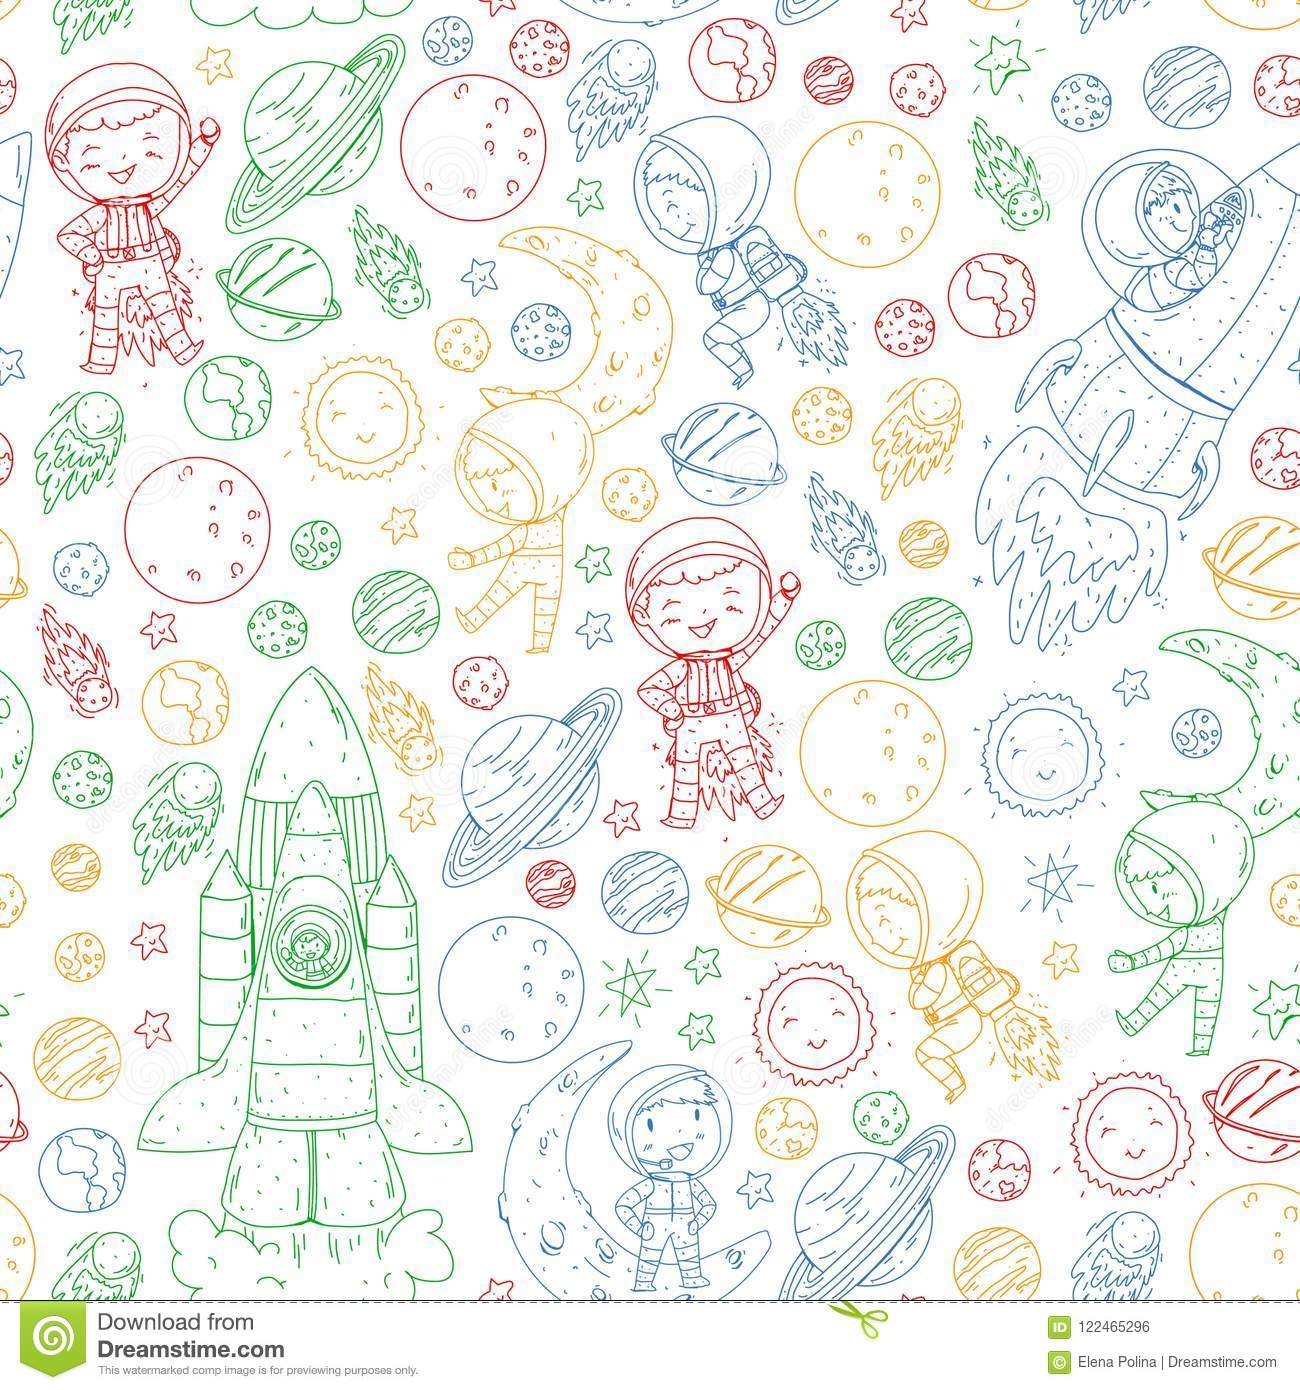 Moon Coloring Page (With images) | Planet coloring pages, Moon ... | 1390x1300